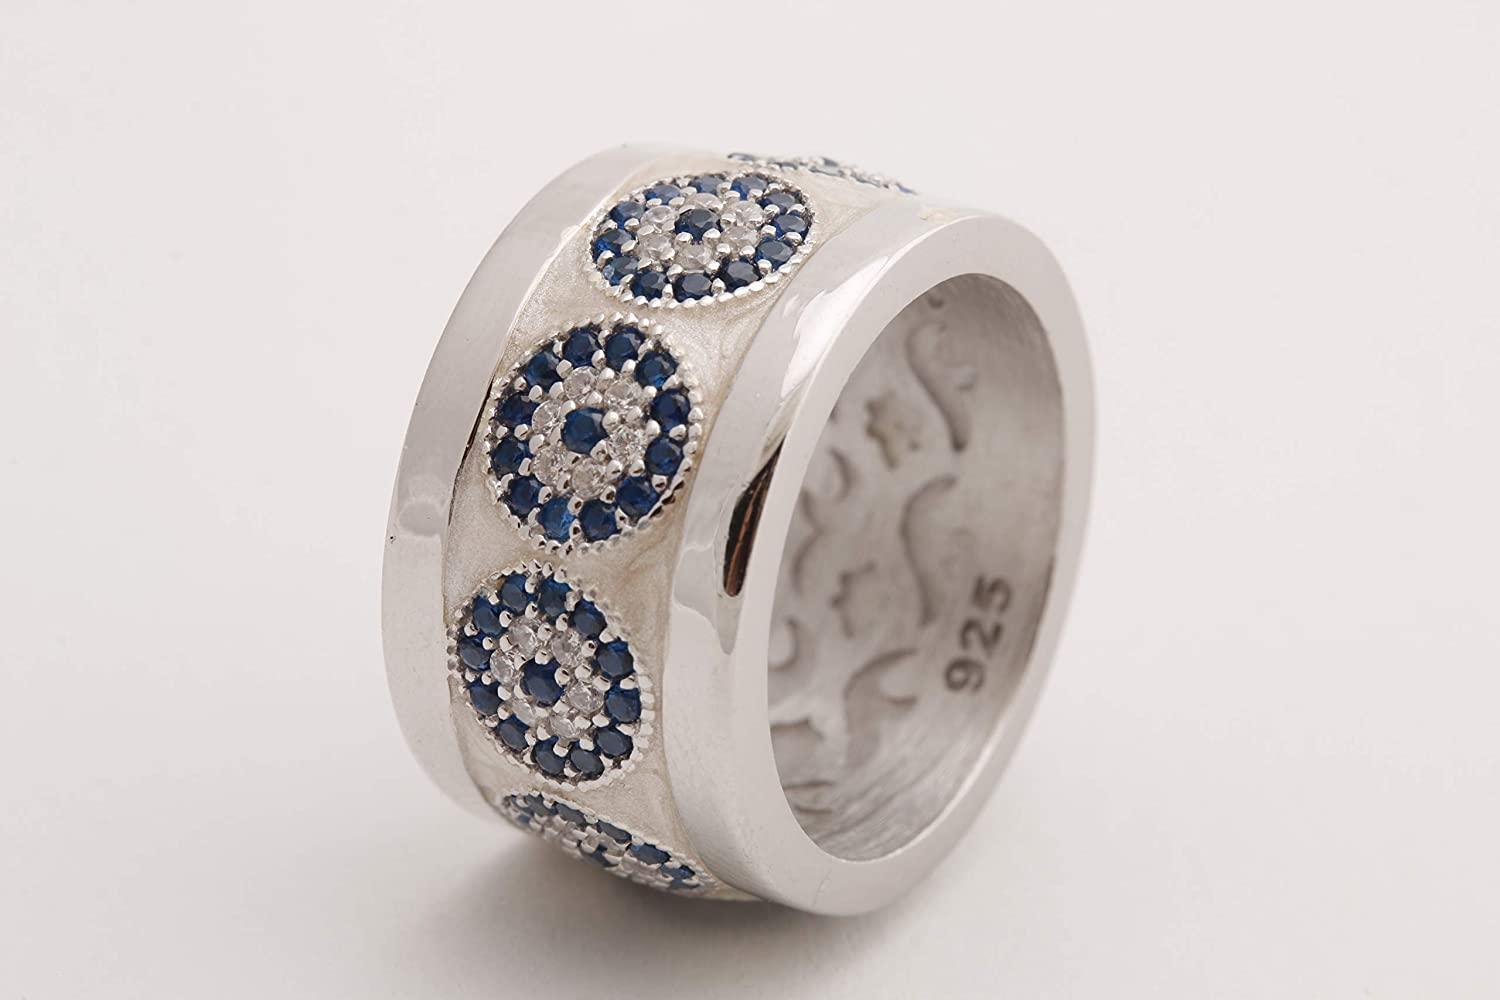 Nazar Turkish Handmade Jewelry White Enamel Evil Eye Sapphire Topaz Sterling Silver Ring With Multiple Size Options